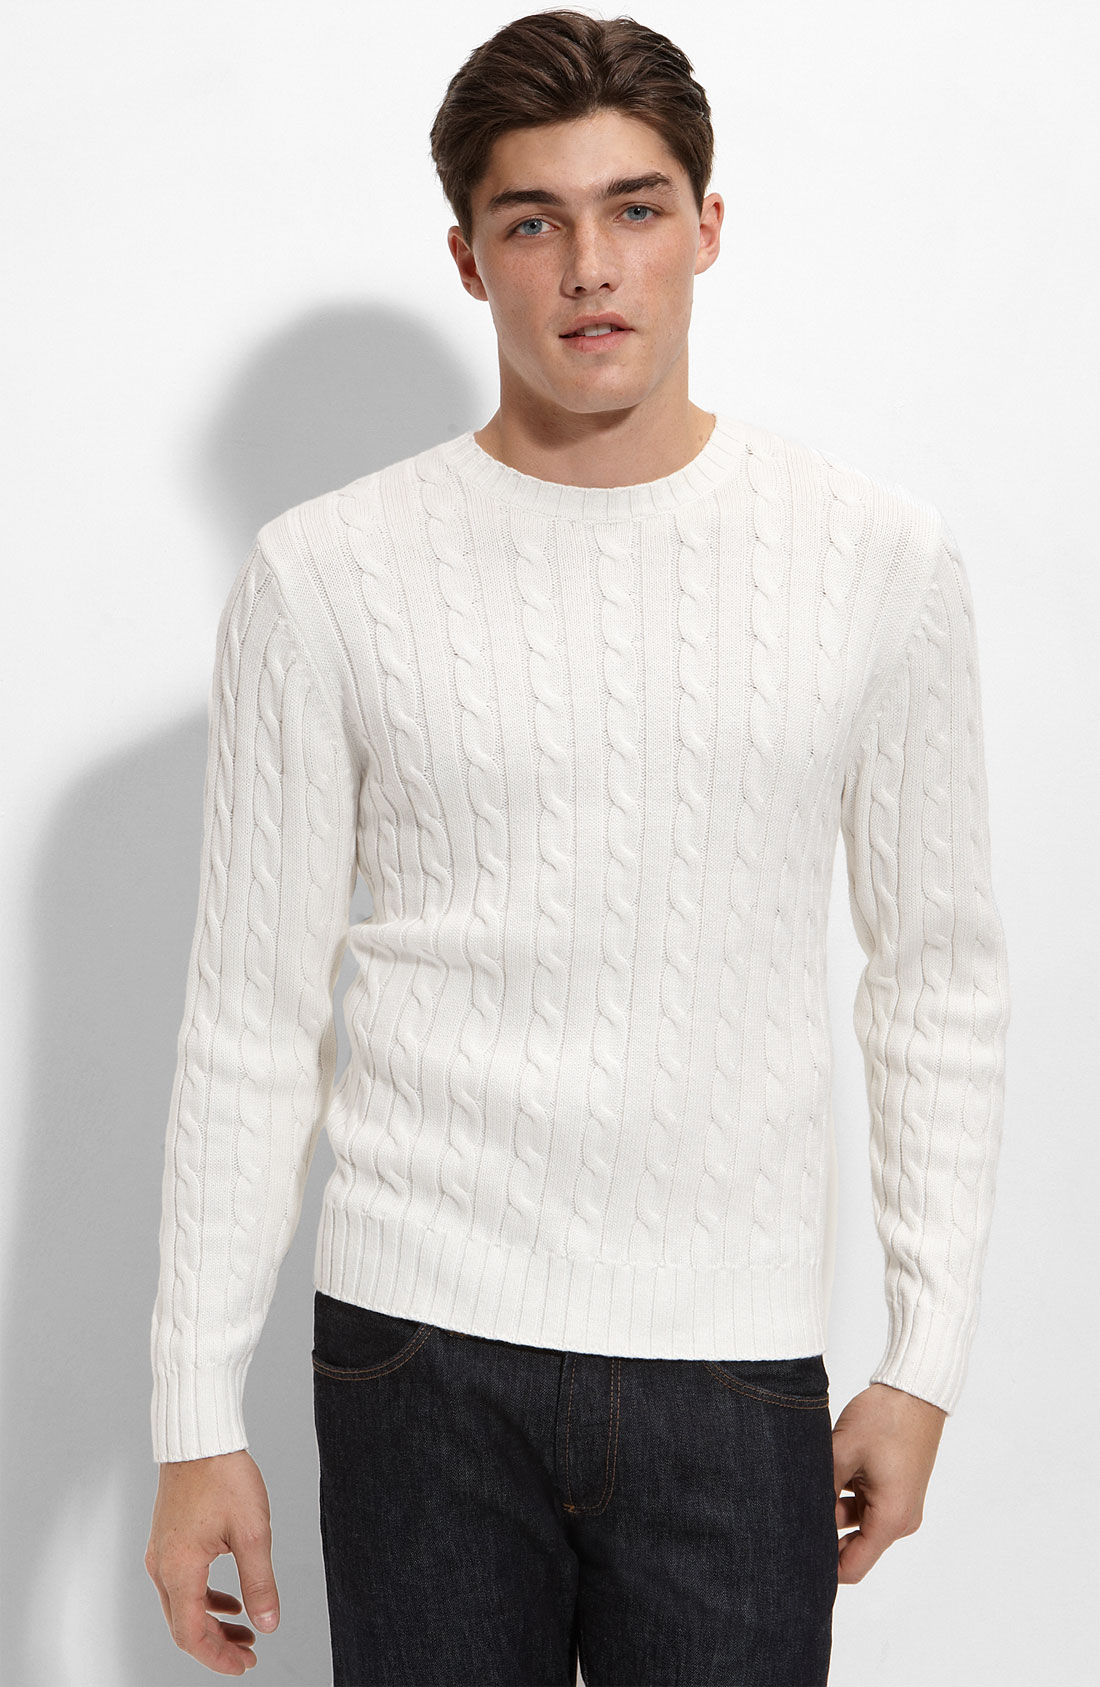 What to Wear Under a V-Neck Sweater A V-neck jumper is a versatile piece that's easy to mix and match with a range of outfits. Team your men's jumper with .